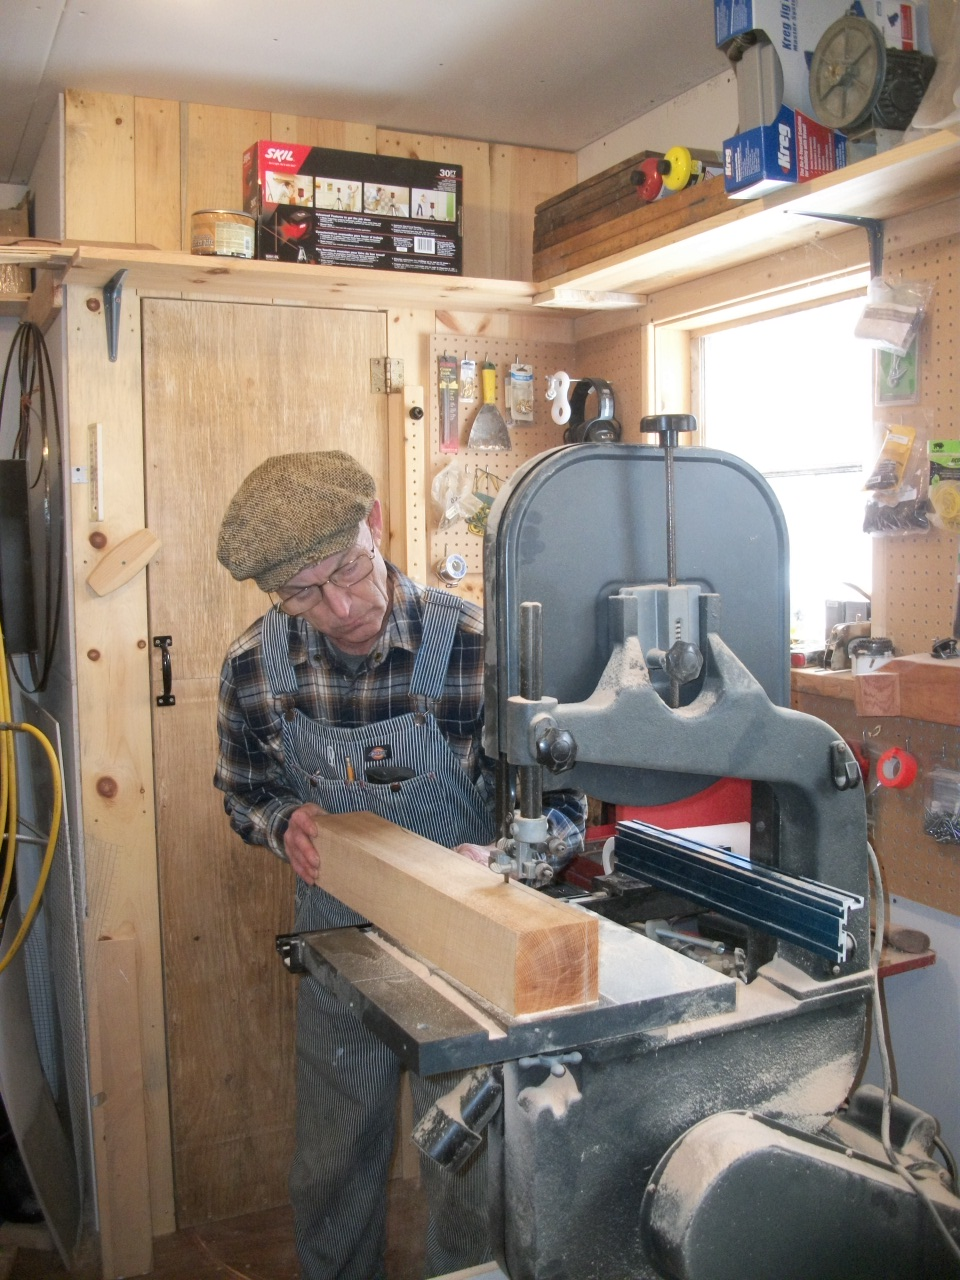 Roughing out a spoke on the bandsaw removing excess wood.